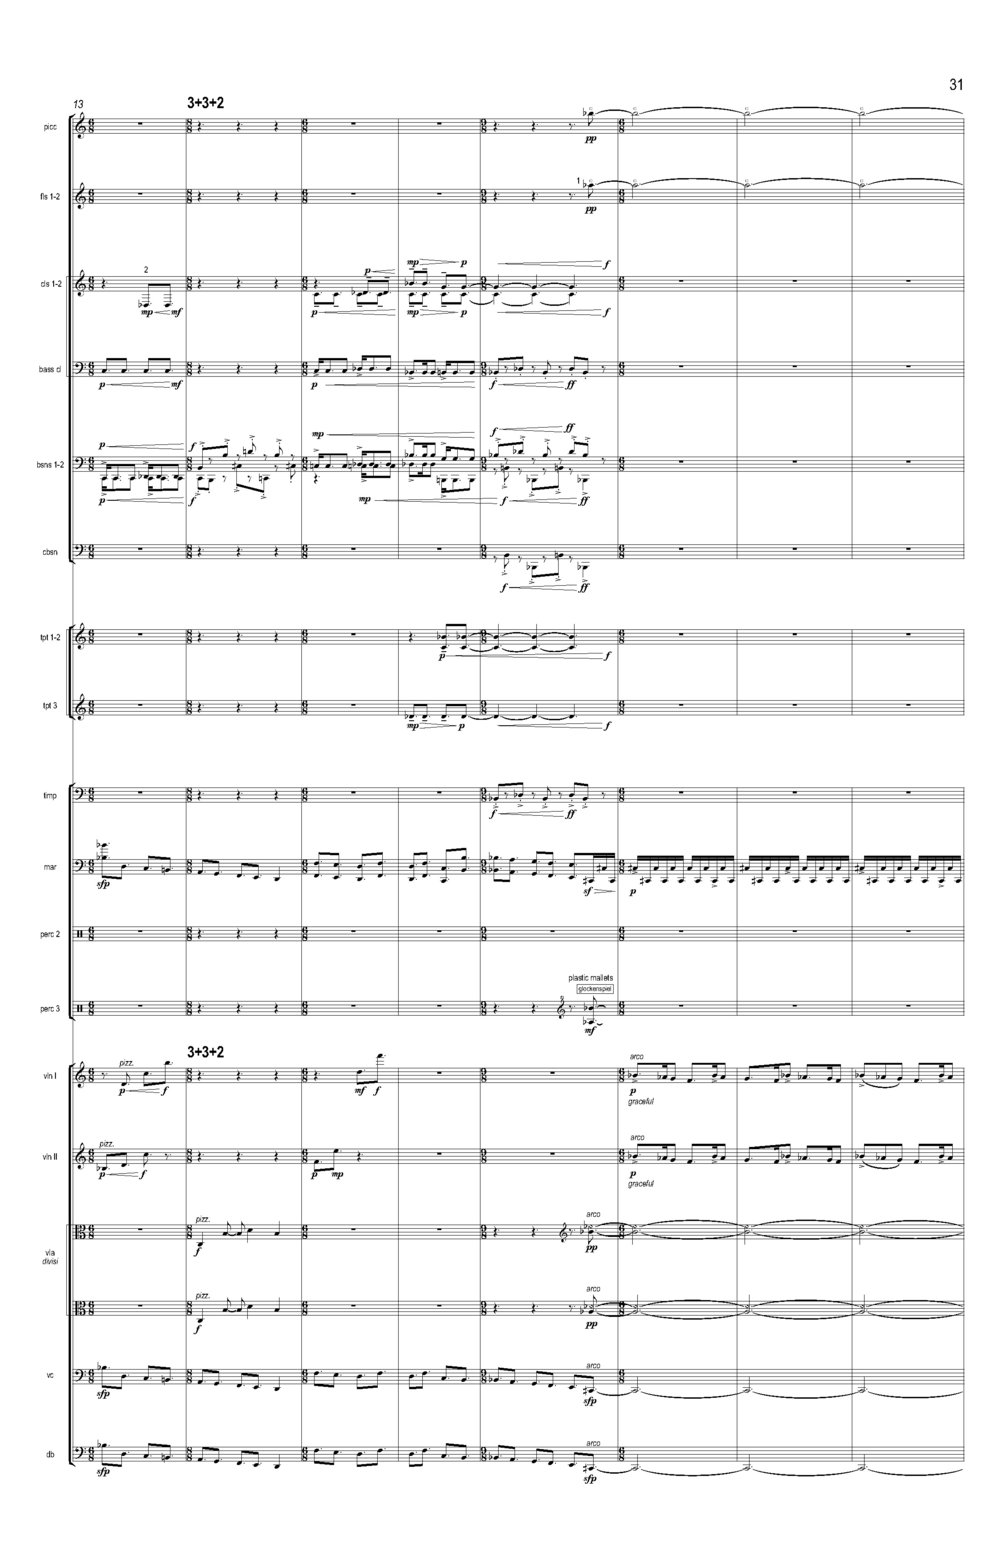 Ciach_Collective Uncommon REVISED_Full Score (Feb 2017)_Seite_37.jpg